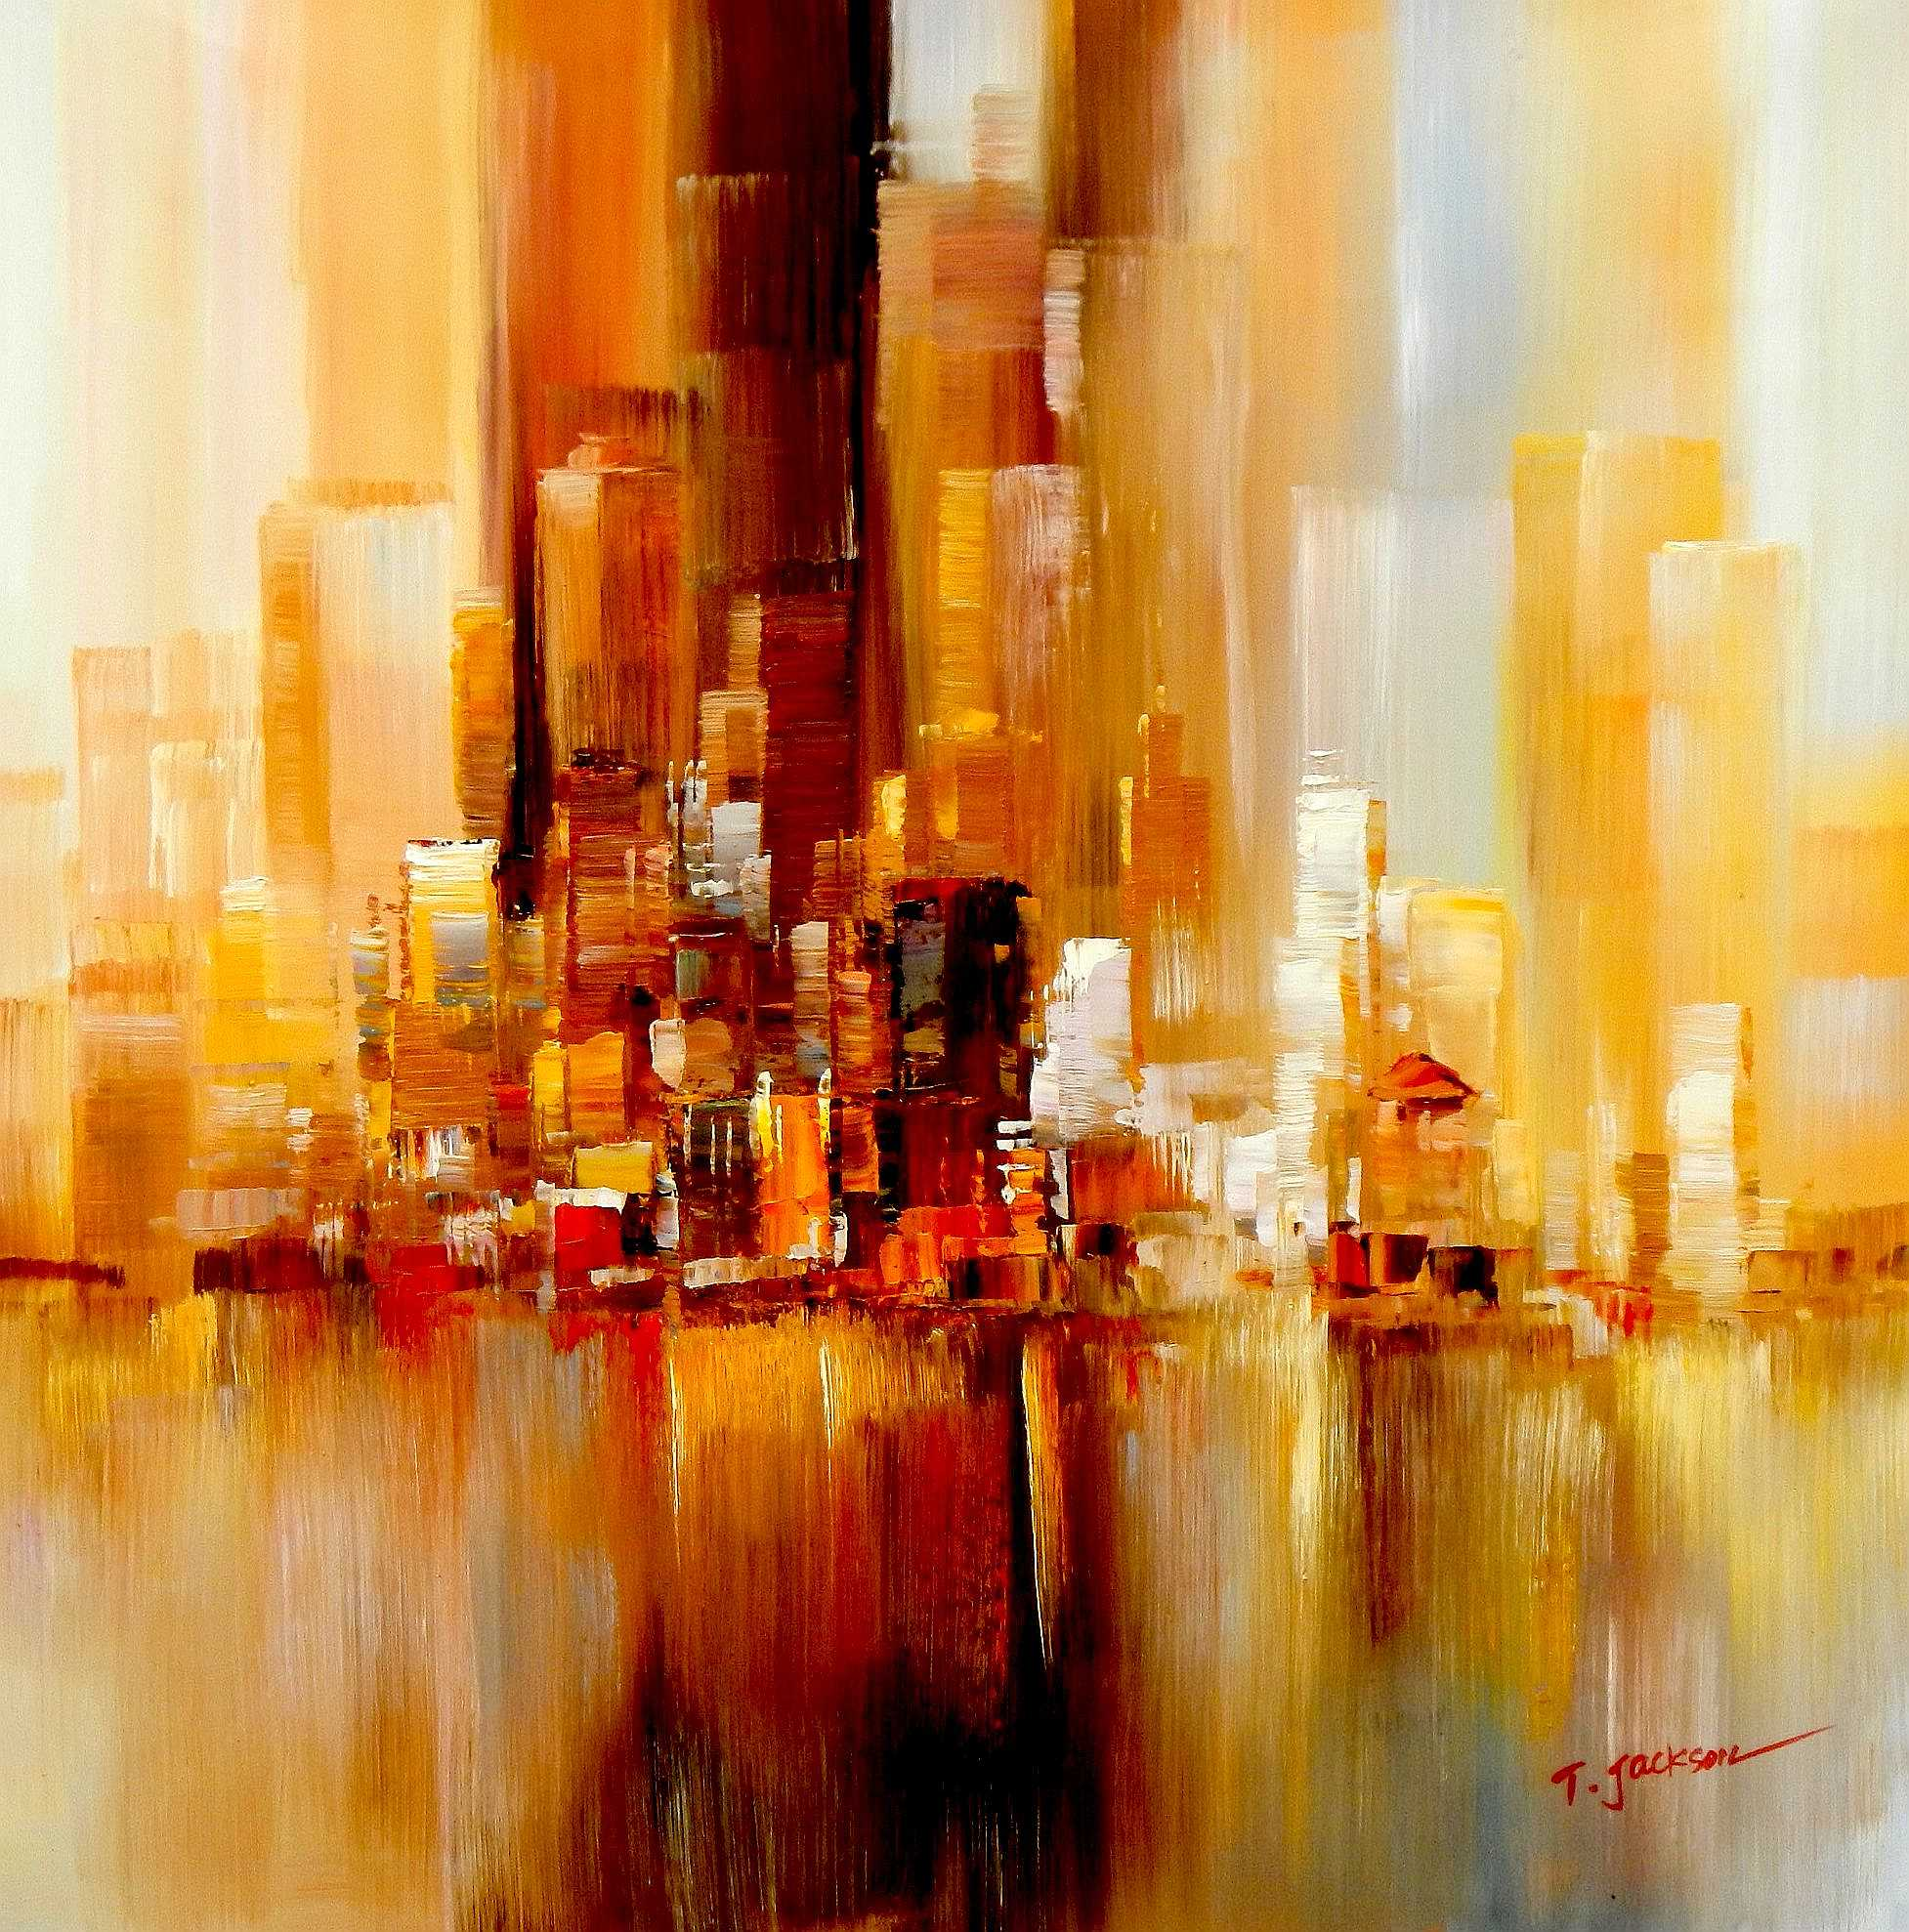 Abstrakt New York Manhattan Skyline im Herbst g95243 80x80cm abstraktes Ölbild